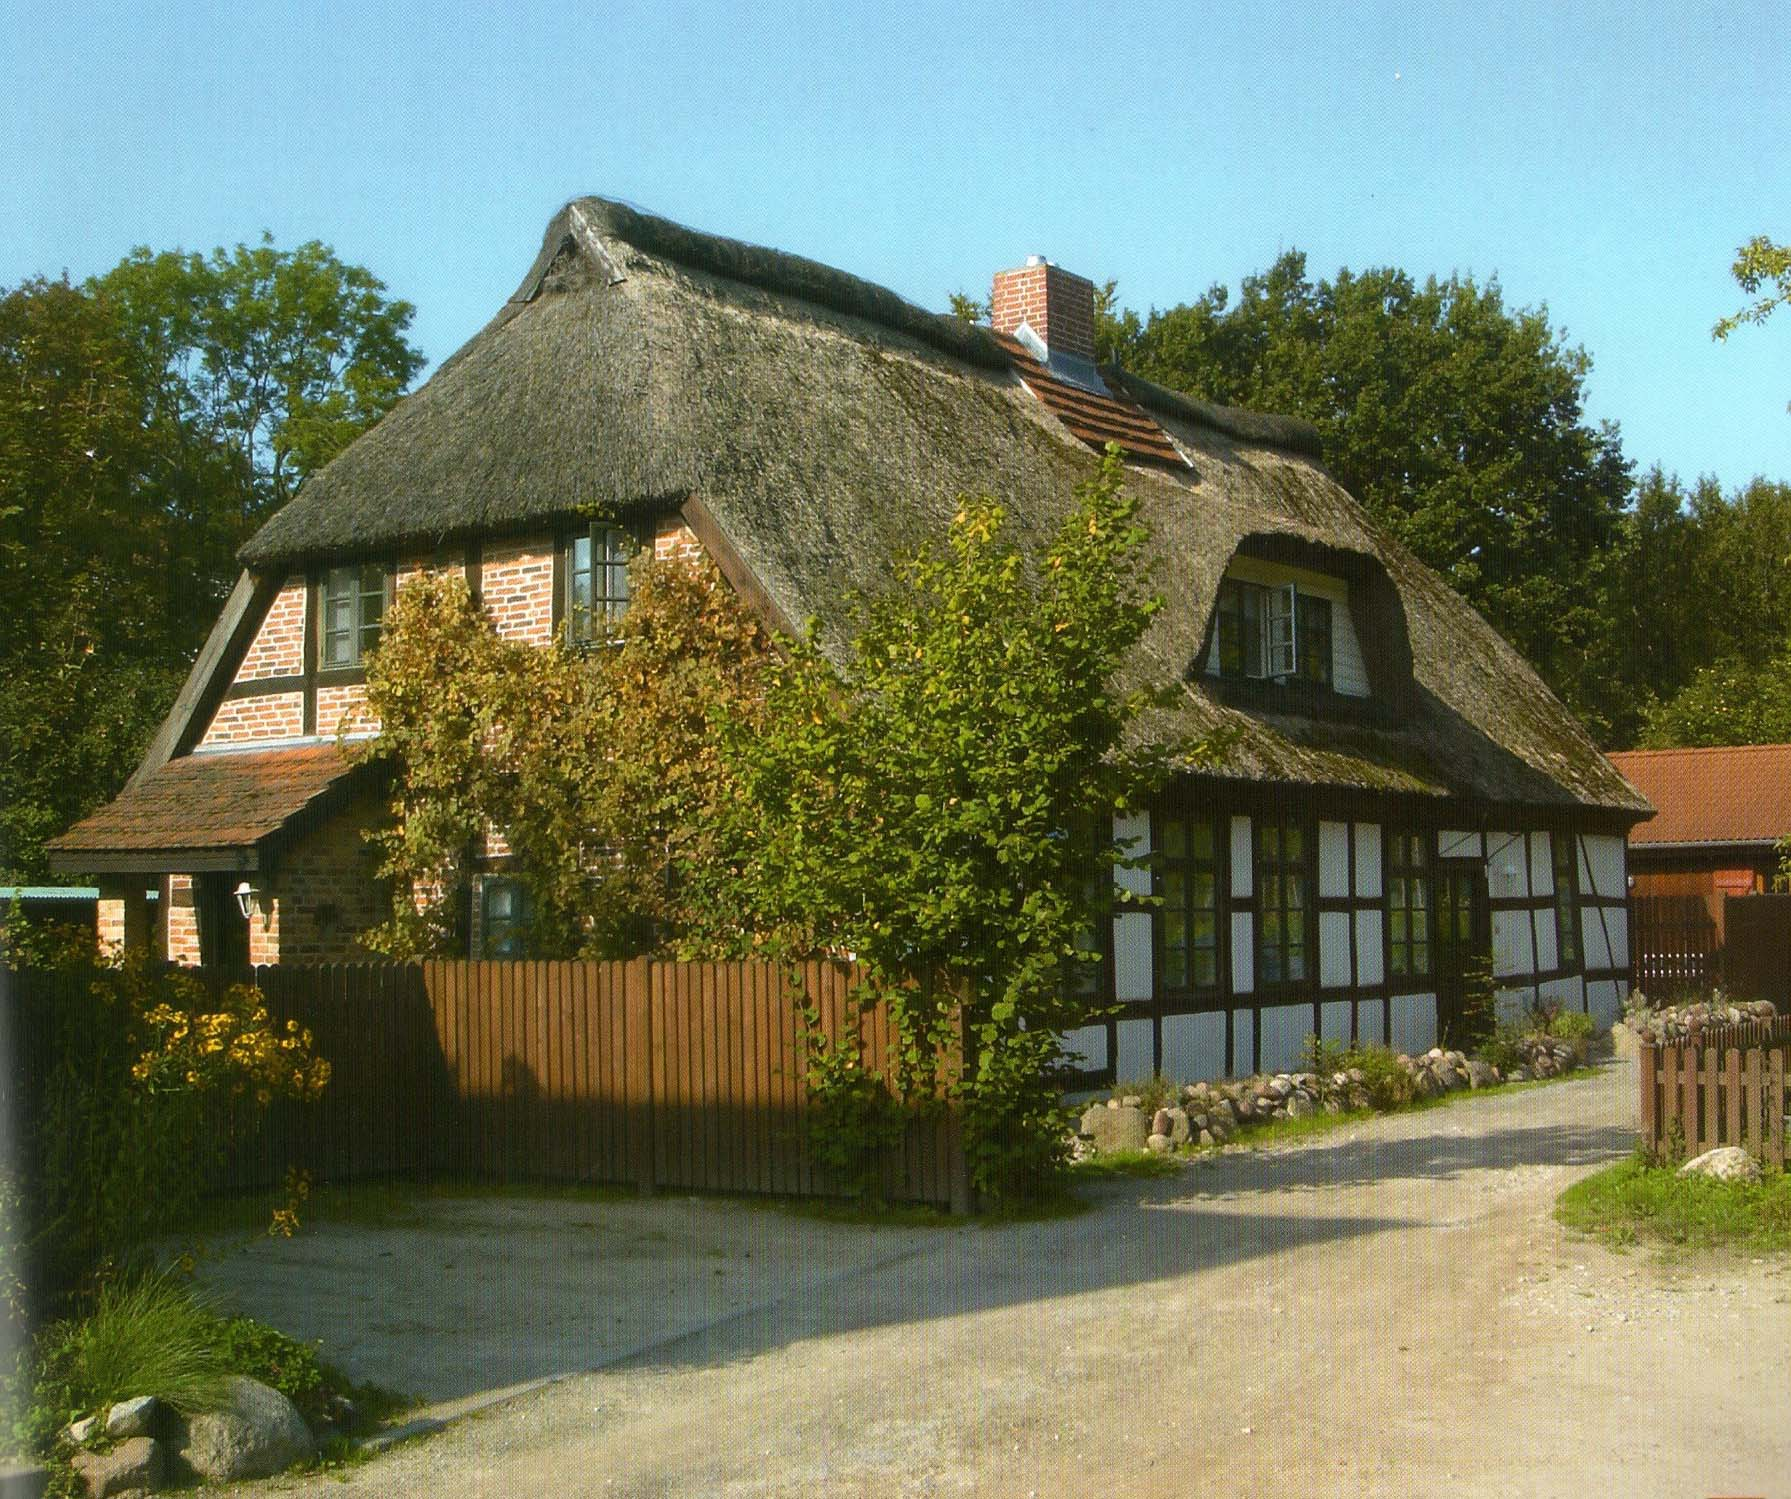 Vacation homes in the Fachwerkreetdachhaus1.jpg